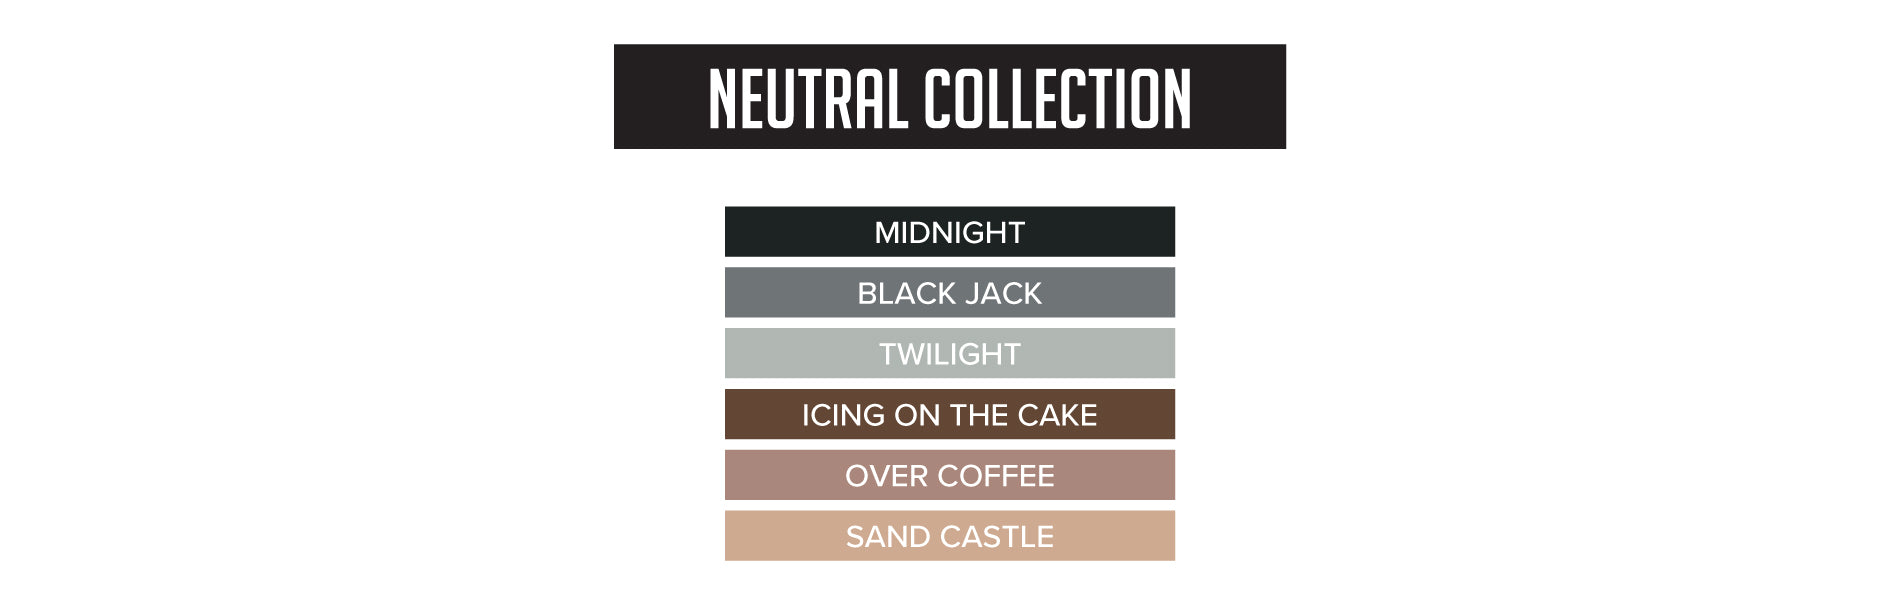 Neutral Collection